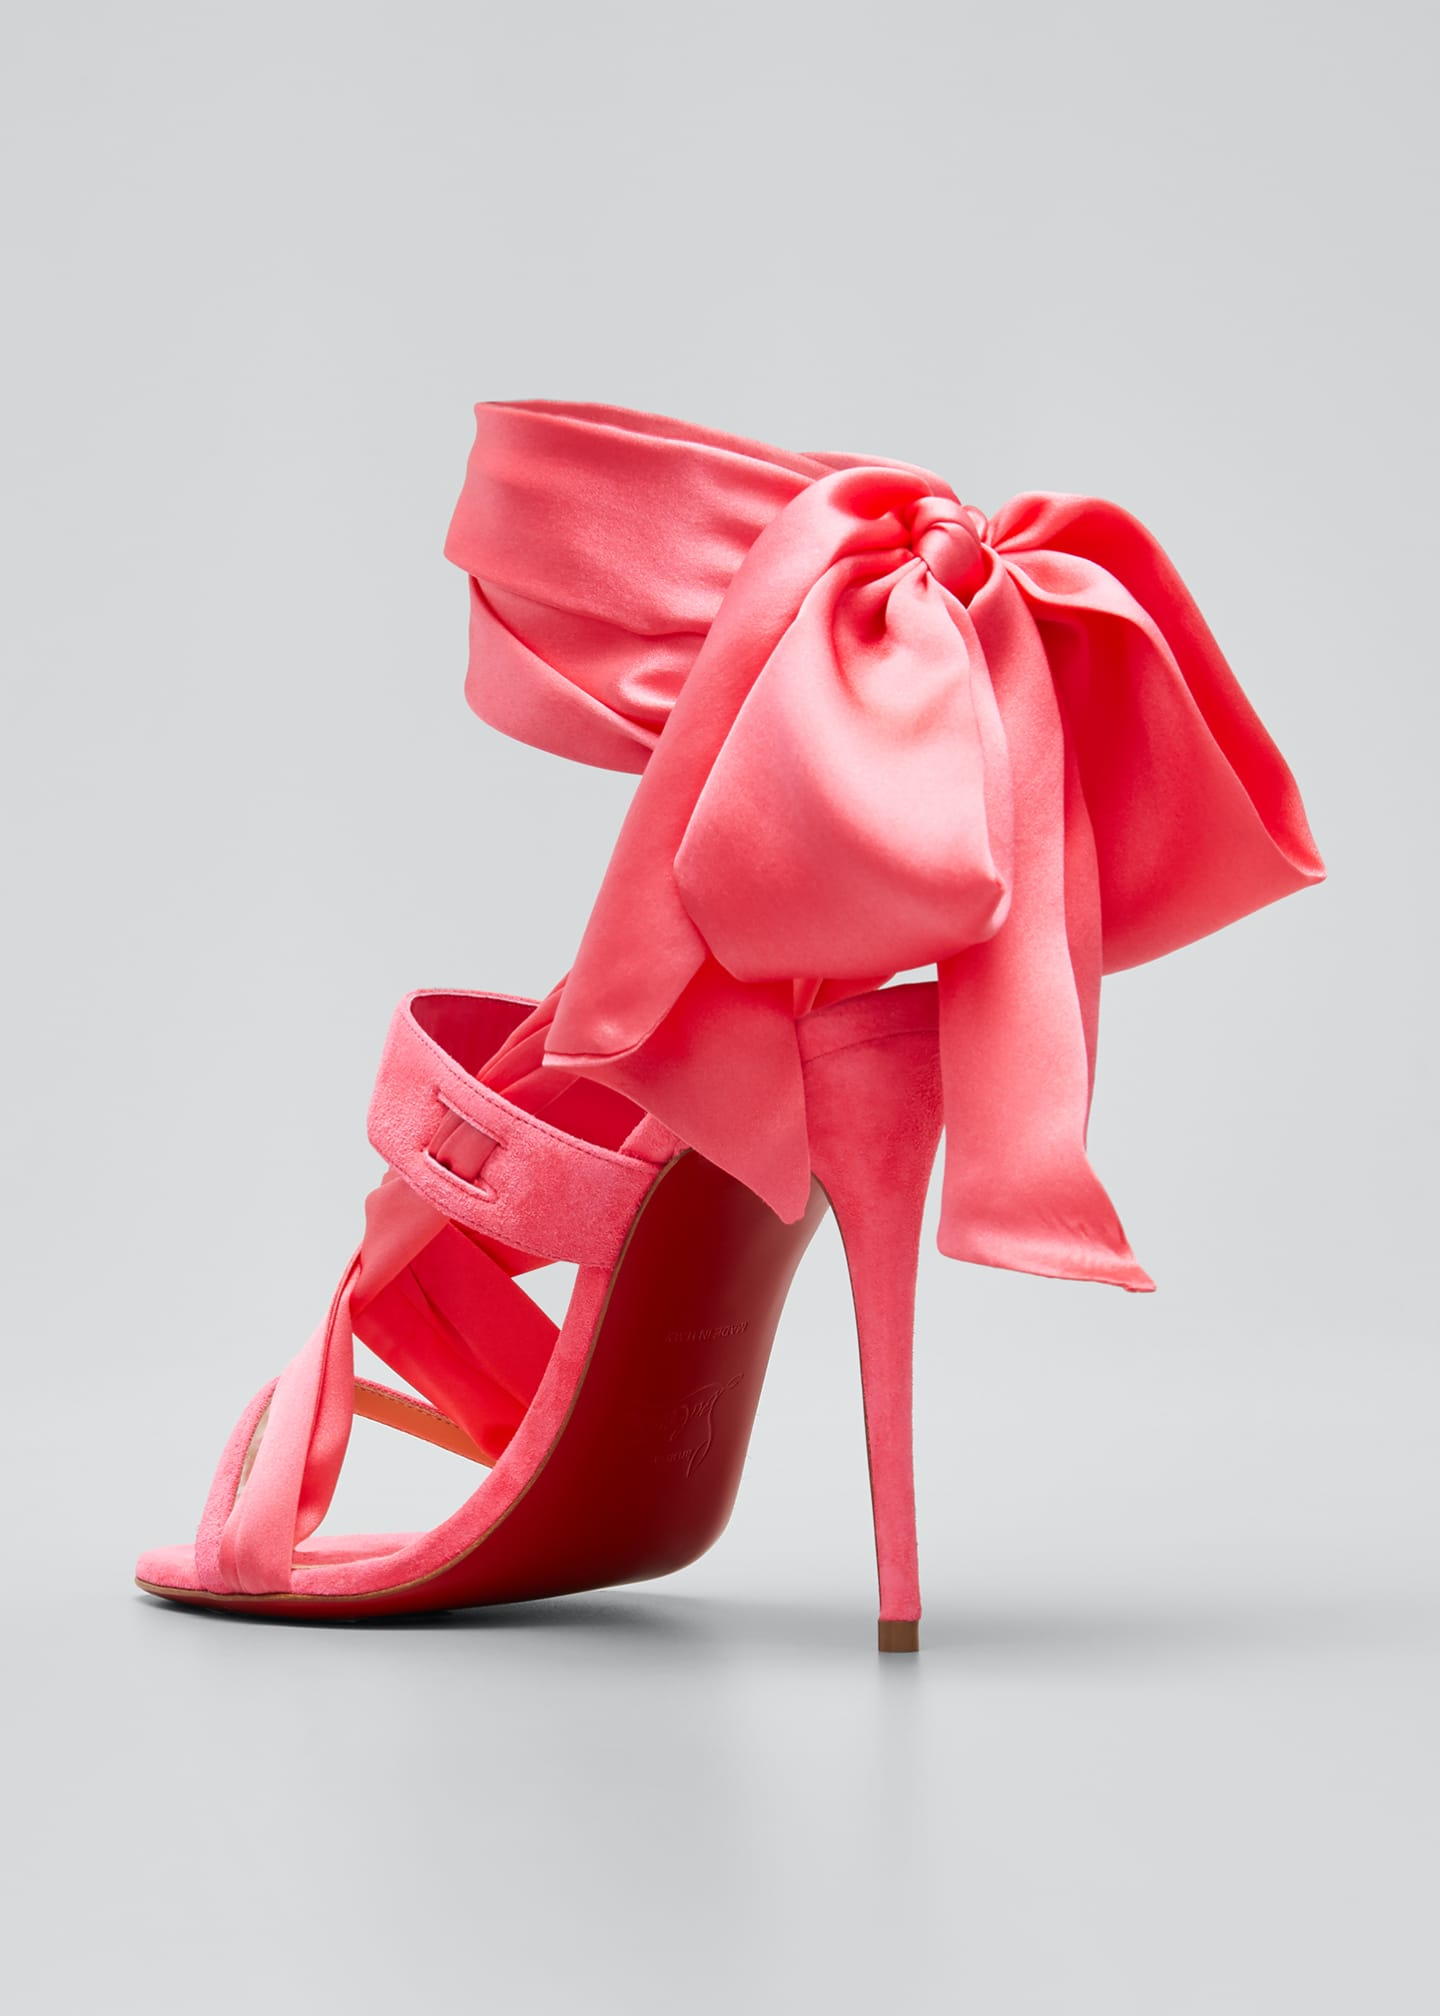 Image 2 of 3: Foulard Cheville Satin/Suede Wrap Red Sole Sandals